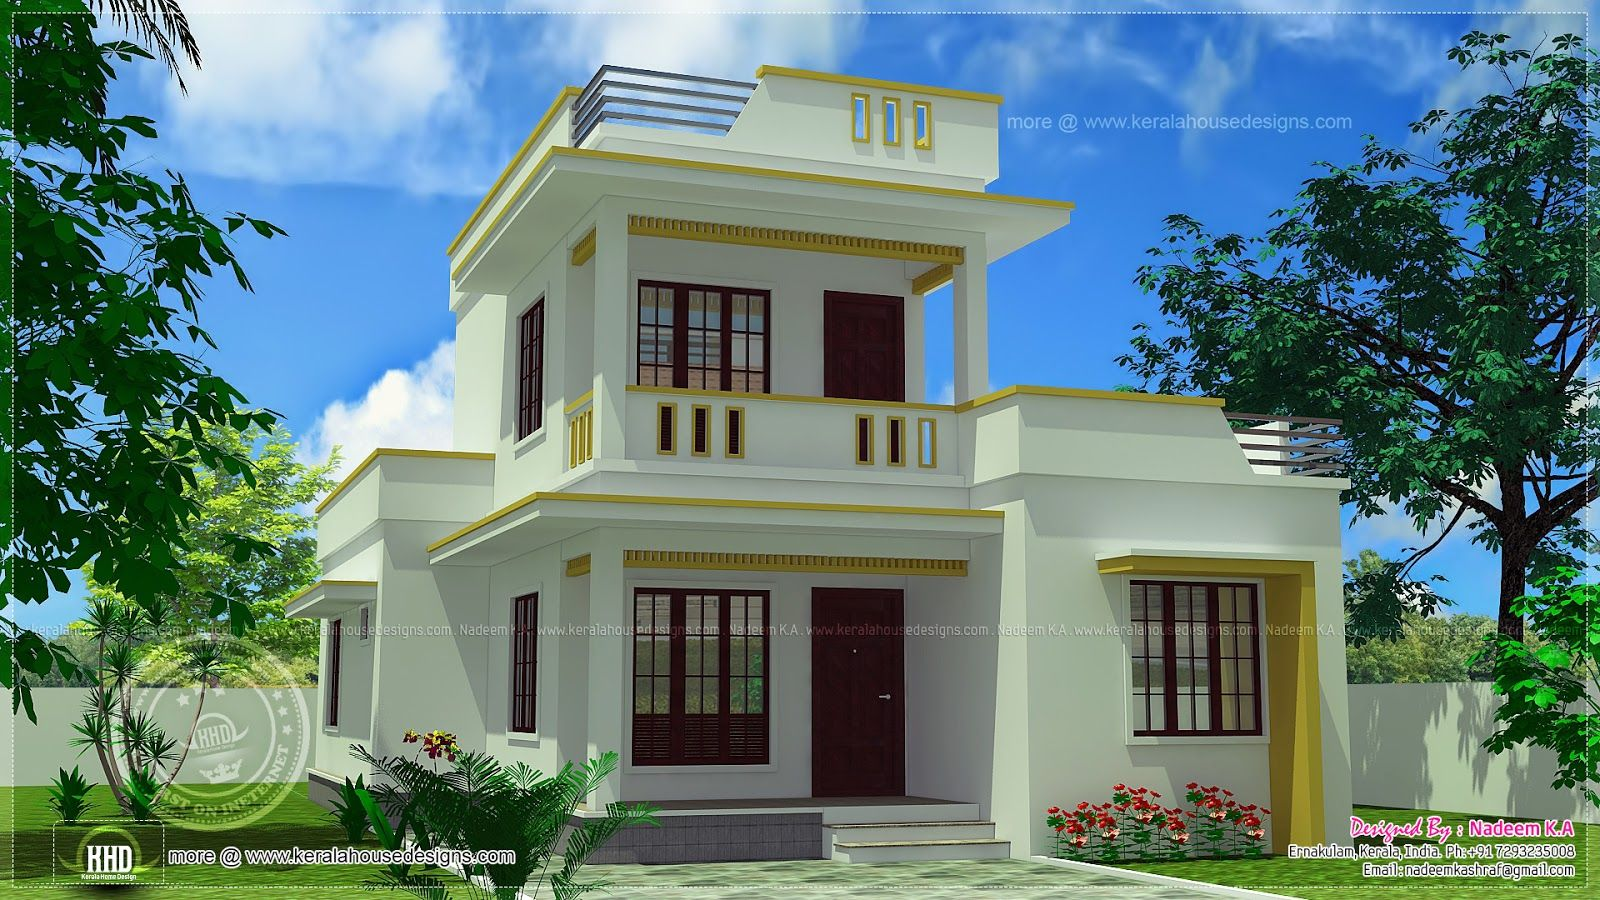 Roof home design feet kerala plans simple modern house for Simple contemporary house